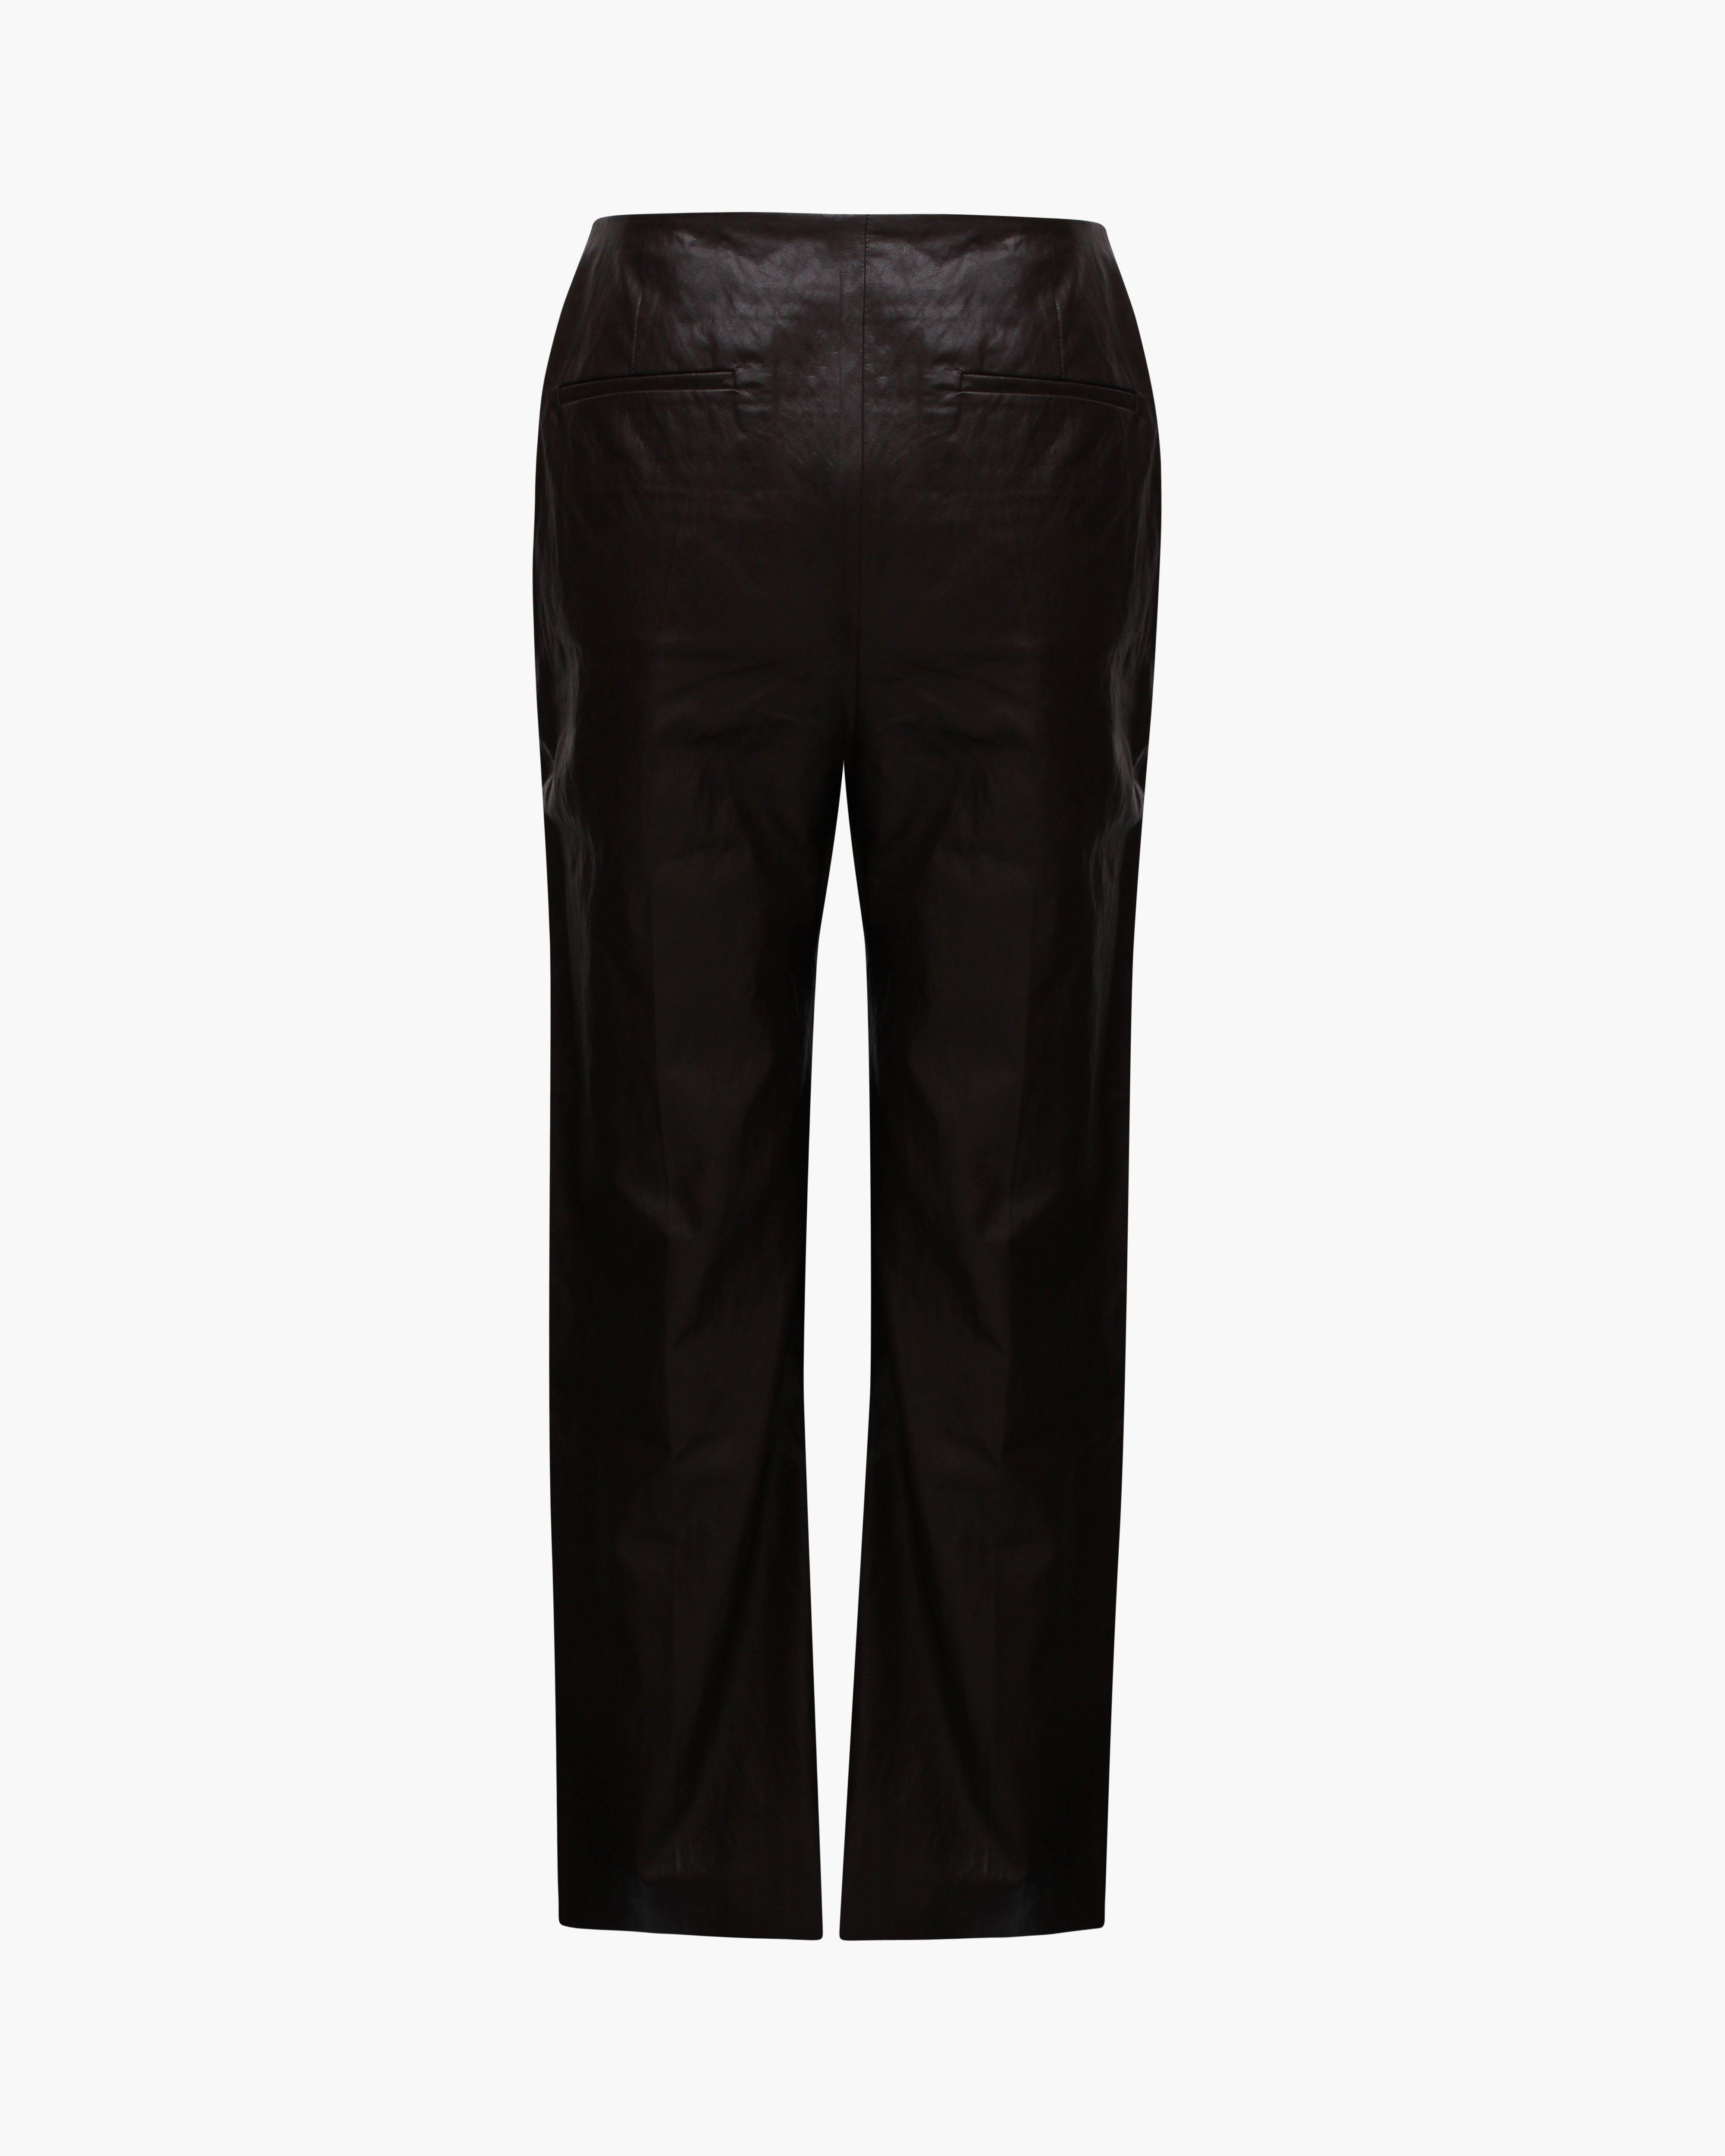 Lexi Trousers Faux Leather Brown 2